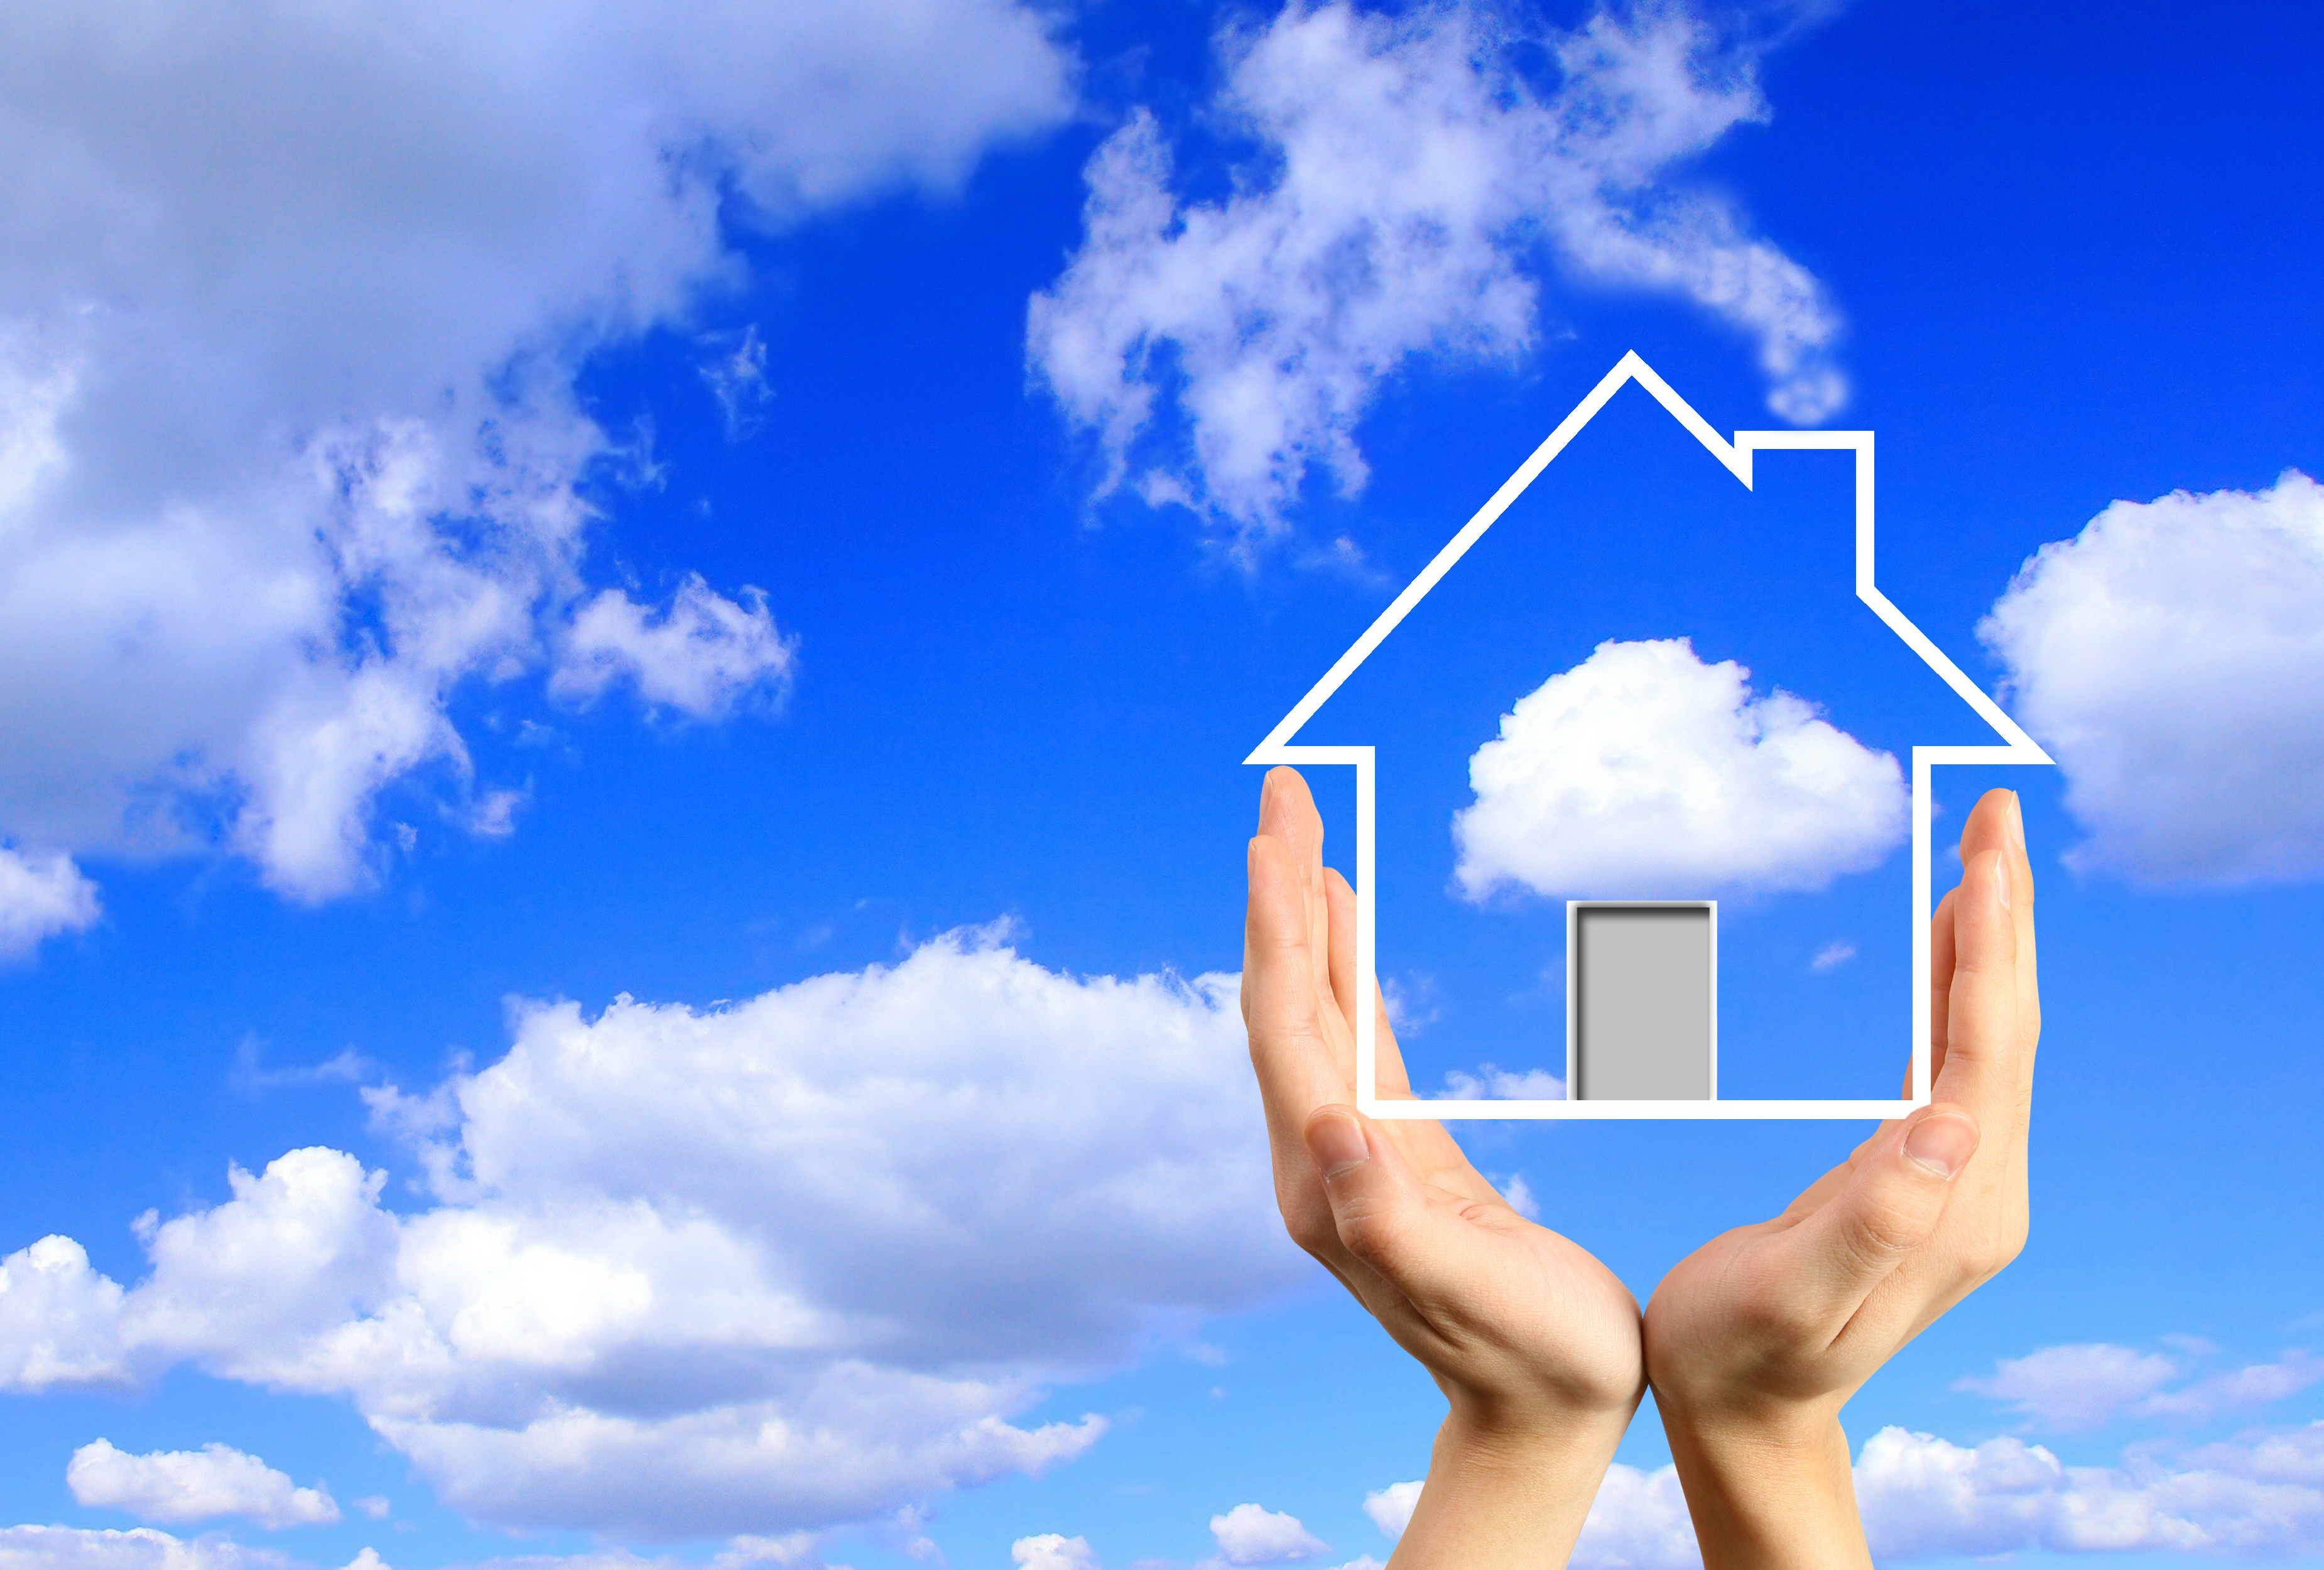 Pre-fabricated homes: The Future of Indian Real Estate